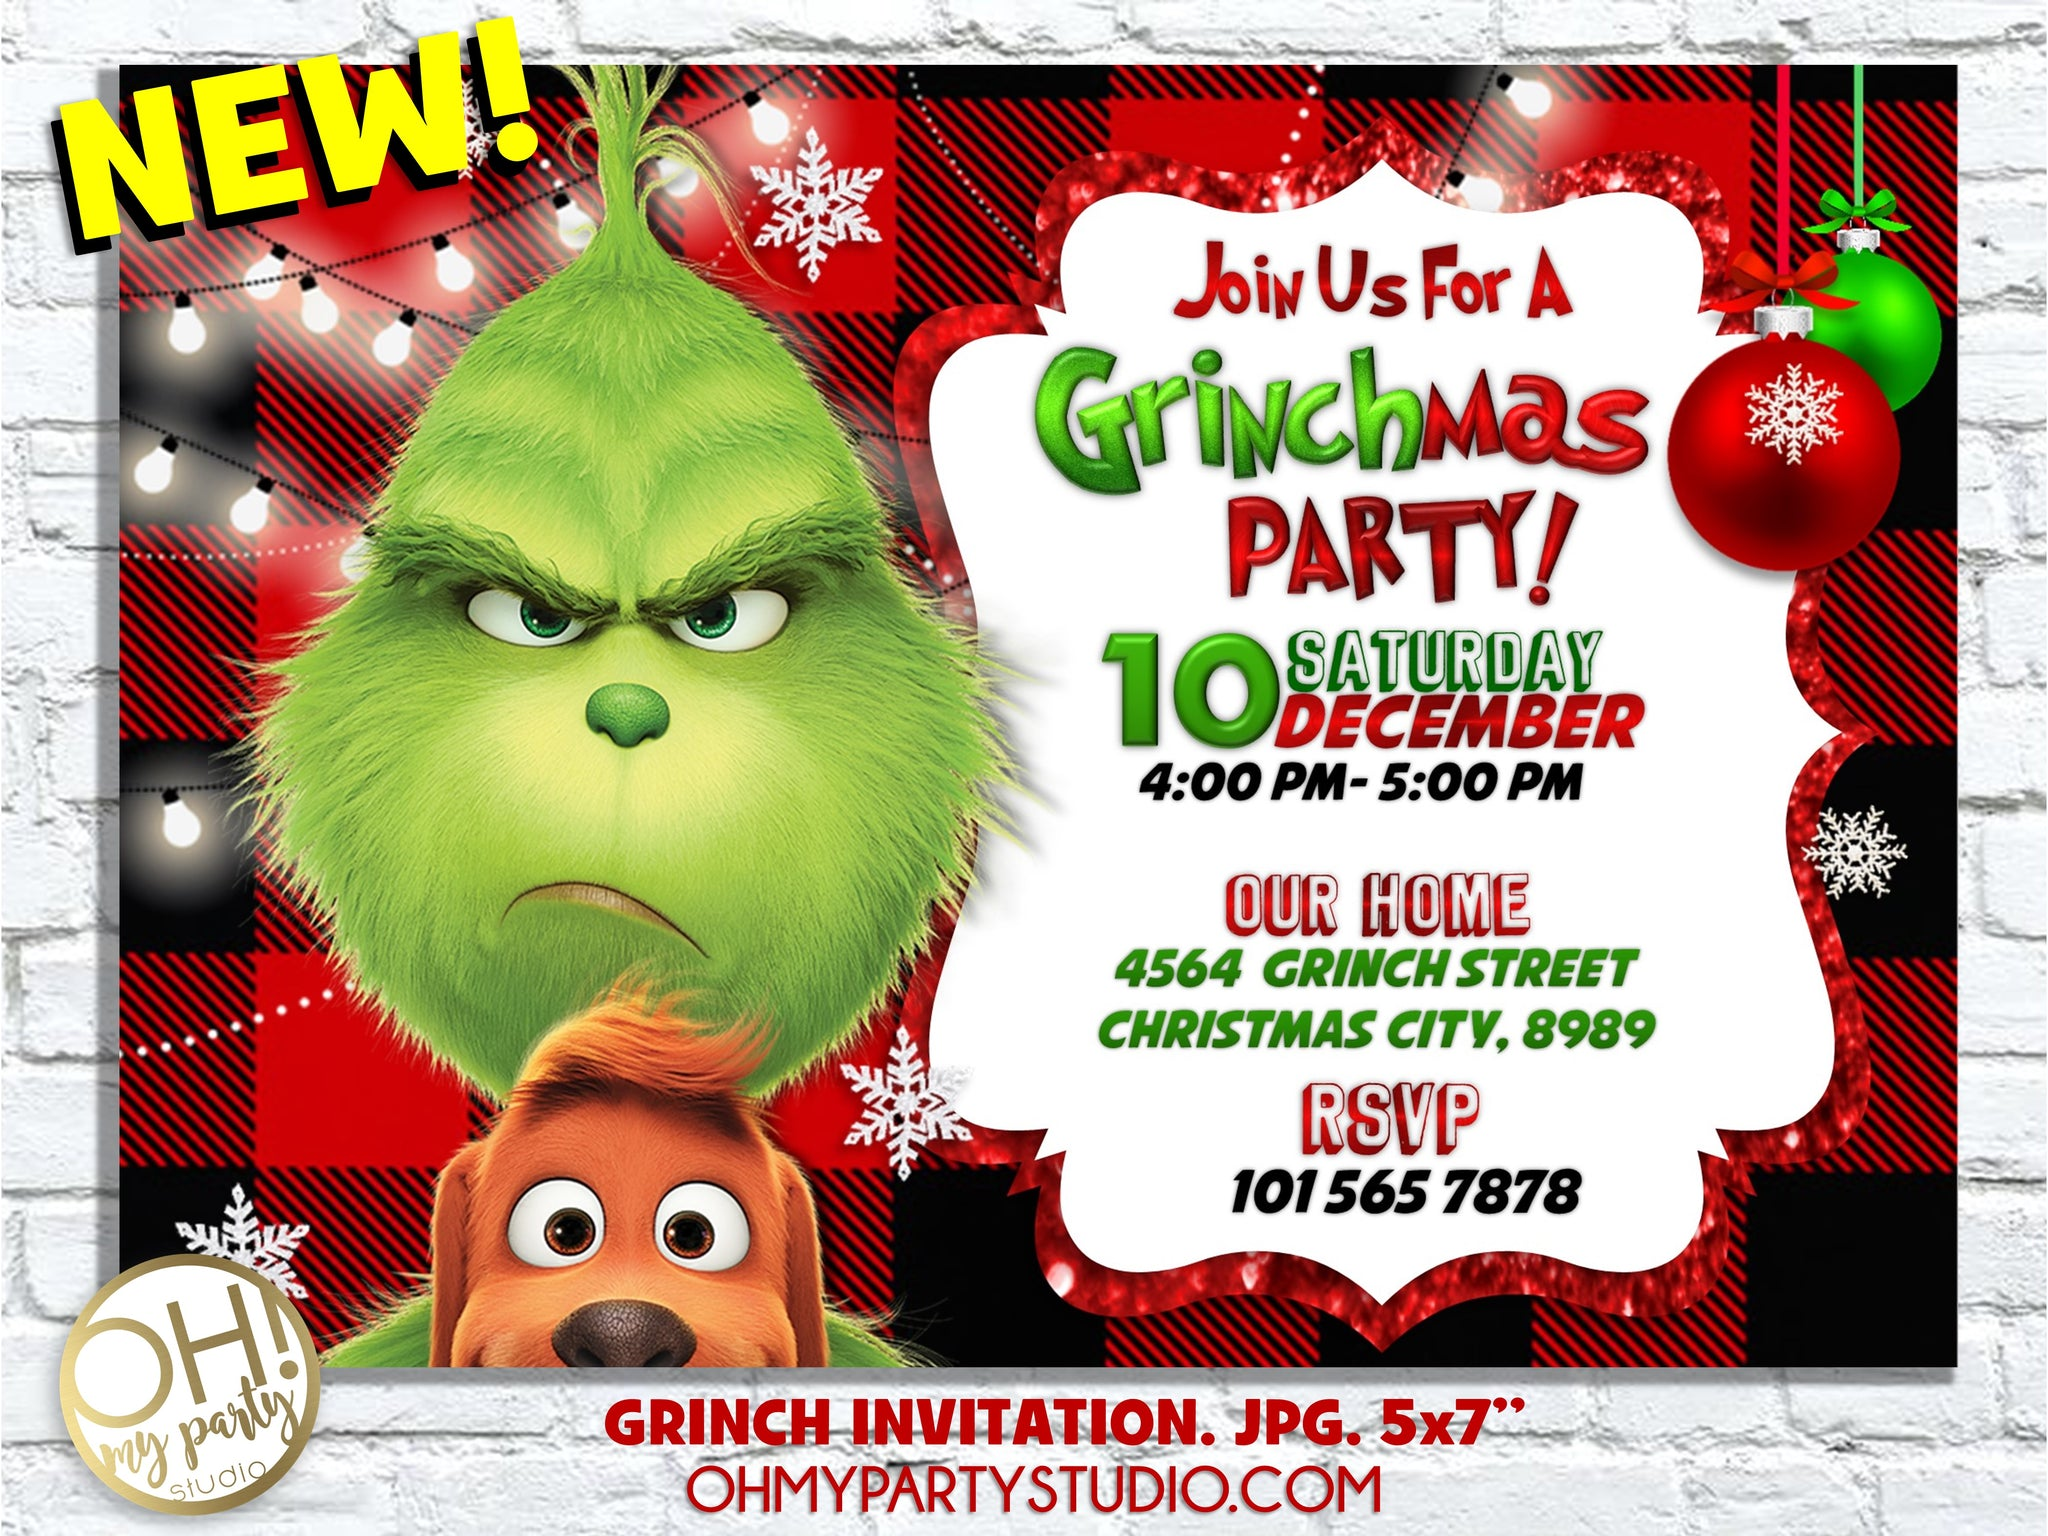 GRINCHMAS PARTY, GRINCH INVITATION, GRINCH INVITATIONS, GRINCH PARTY PRINTABLES, GRINCH DECORATIONS, GRINCH INVITE, GRINCH CARD, GRINCH CHRISTMAS PARTY, GRINCH PARTY IDEAS, GRINCH INVITACIÓN, GRINCH FIESTA, GRINCH BIRTHDAY PARTY IDEAS, GRINCHMAS PARTY, GRINCHMAS INVITE, GRINCHMAS PARTY INVITATION, GRINCHMAS INVITATION, GRINCHMAS DECORATIONS